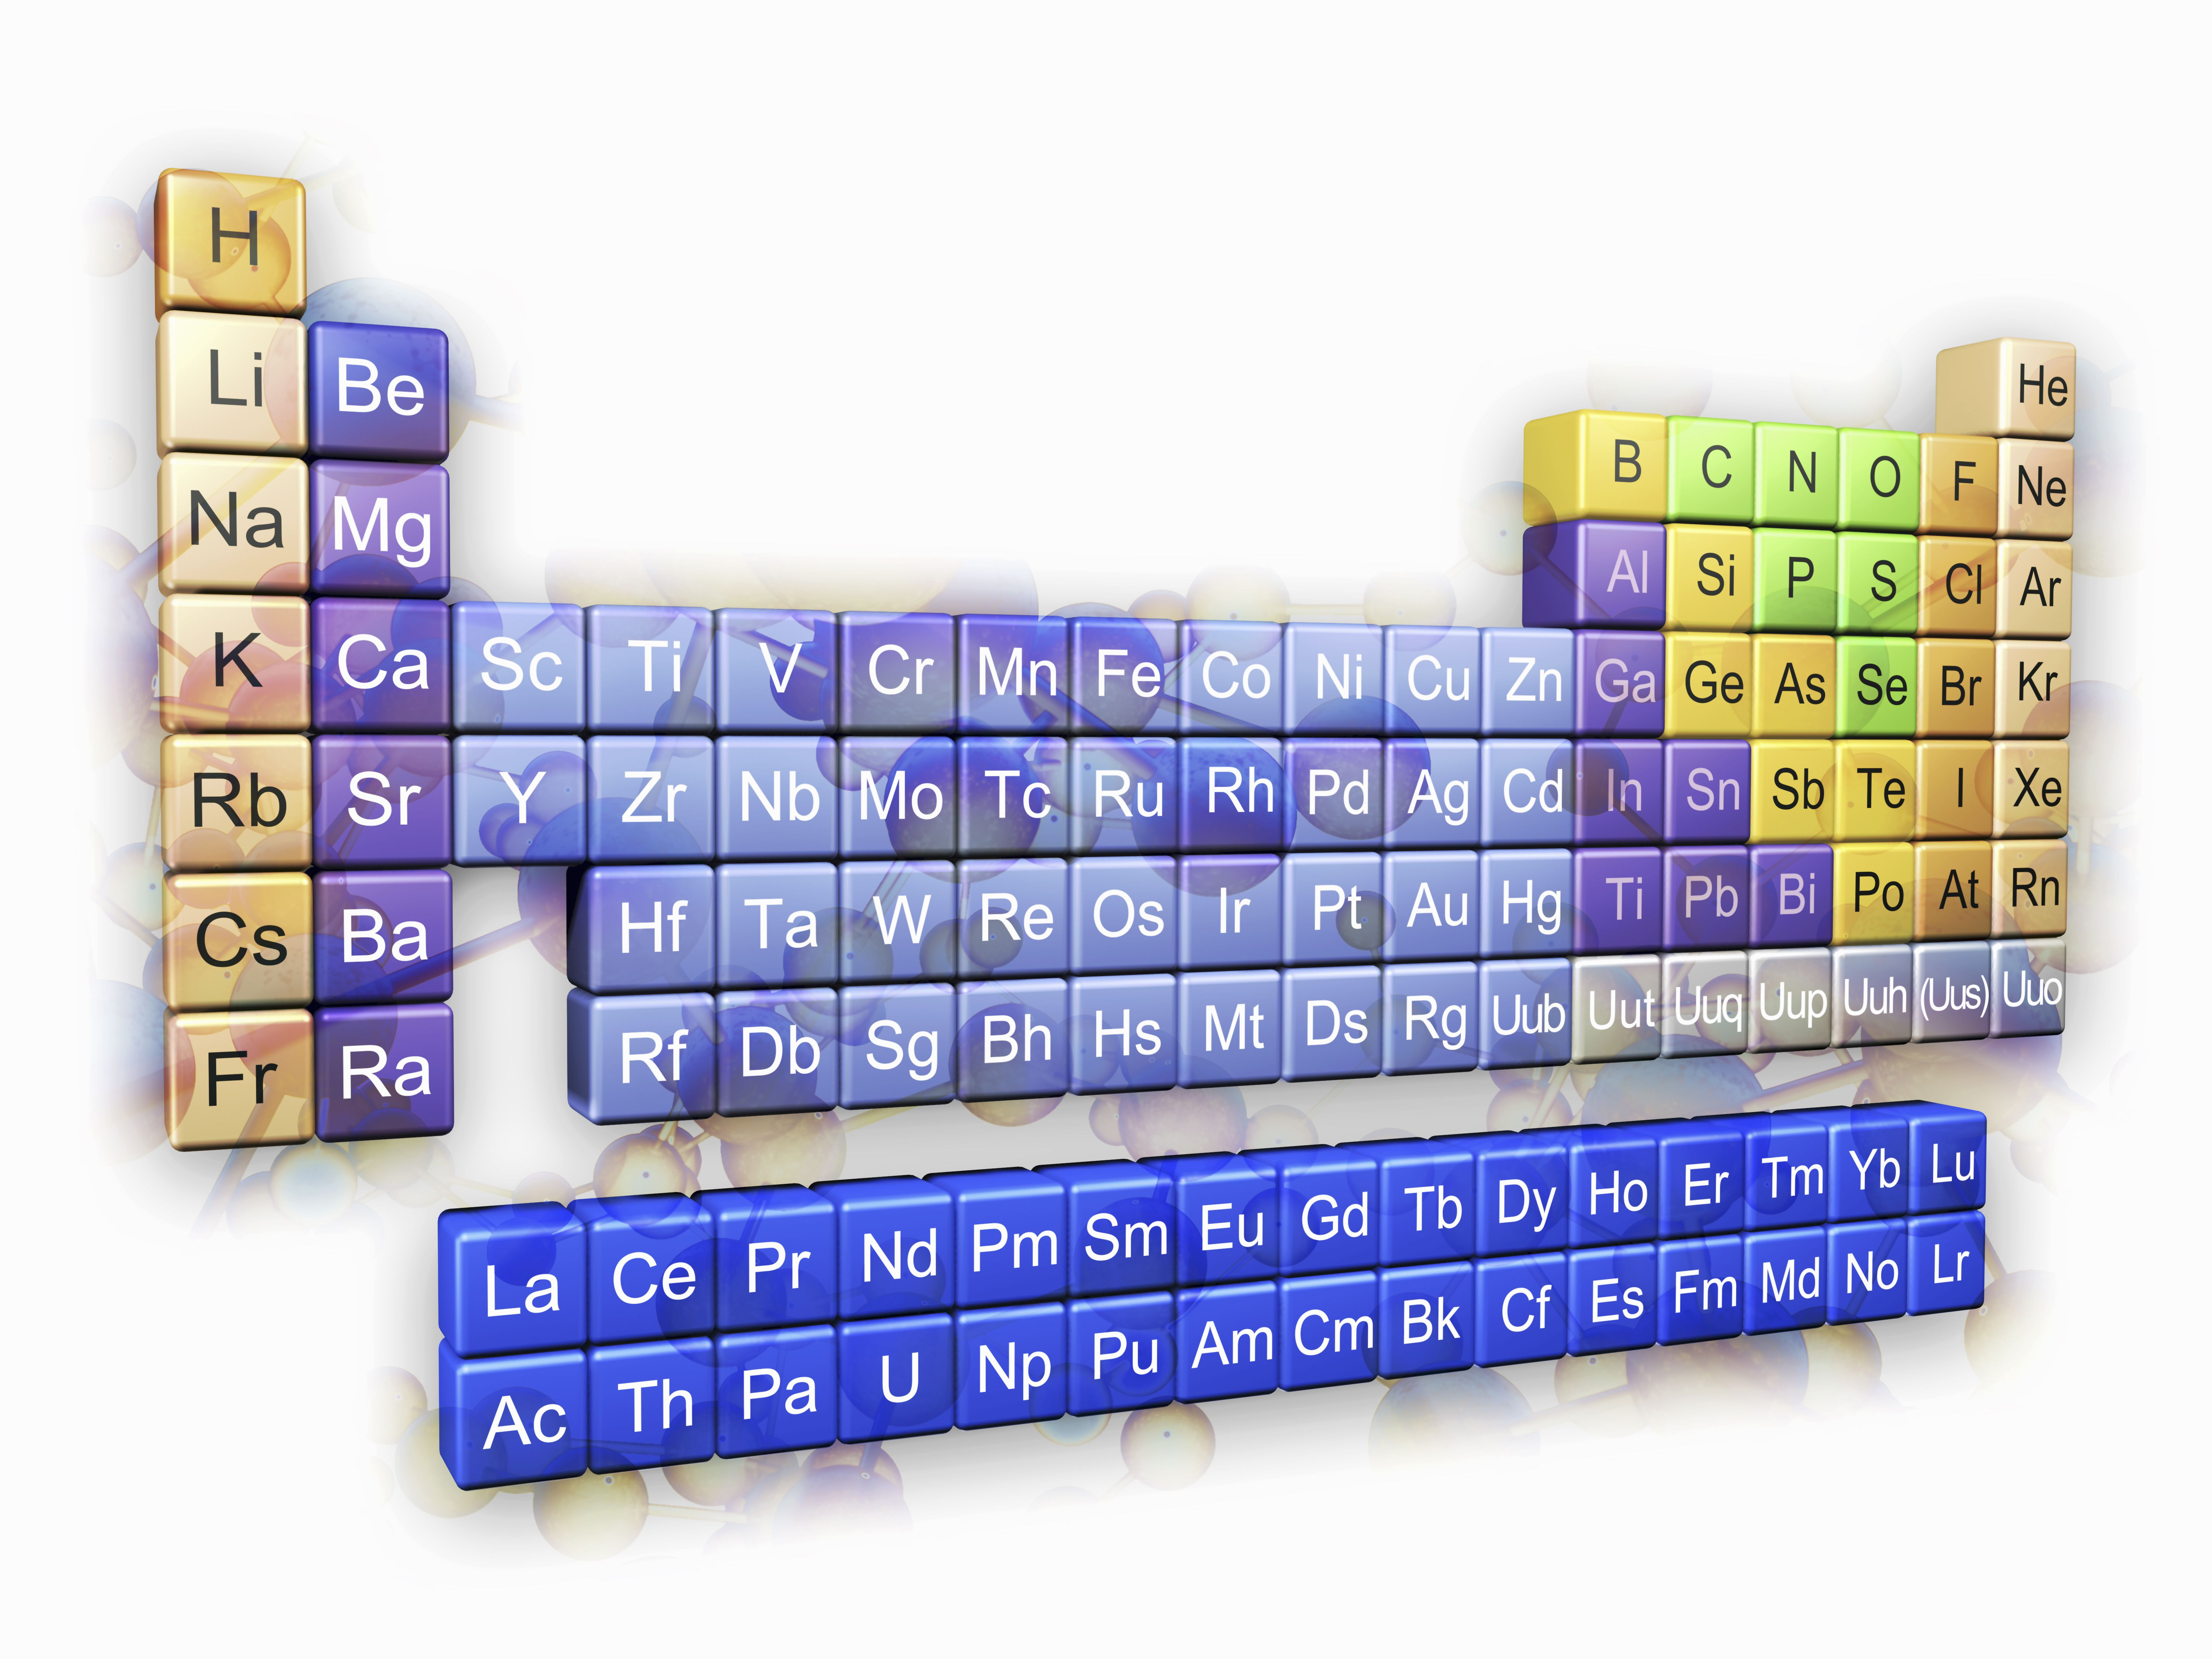 Why Lanthanides and Actinides Are Separate on the Periodic Table